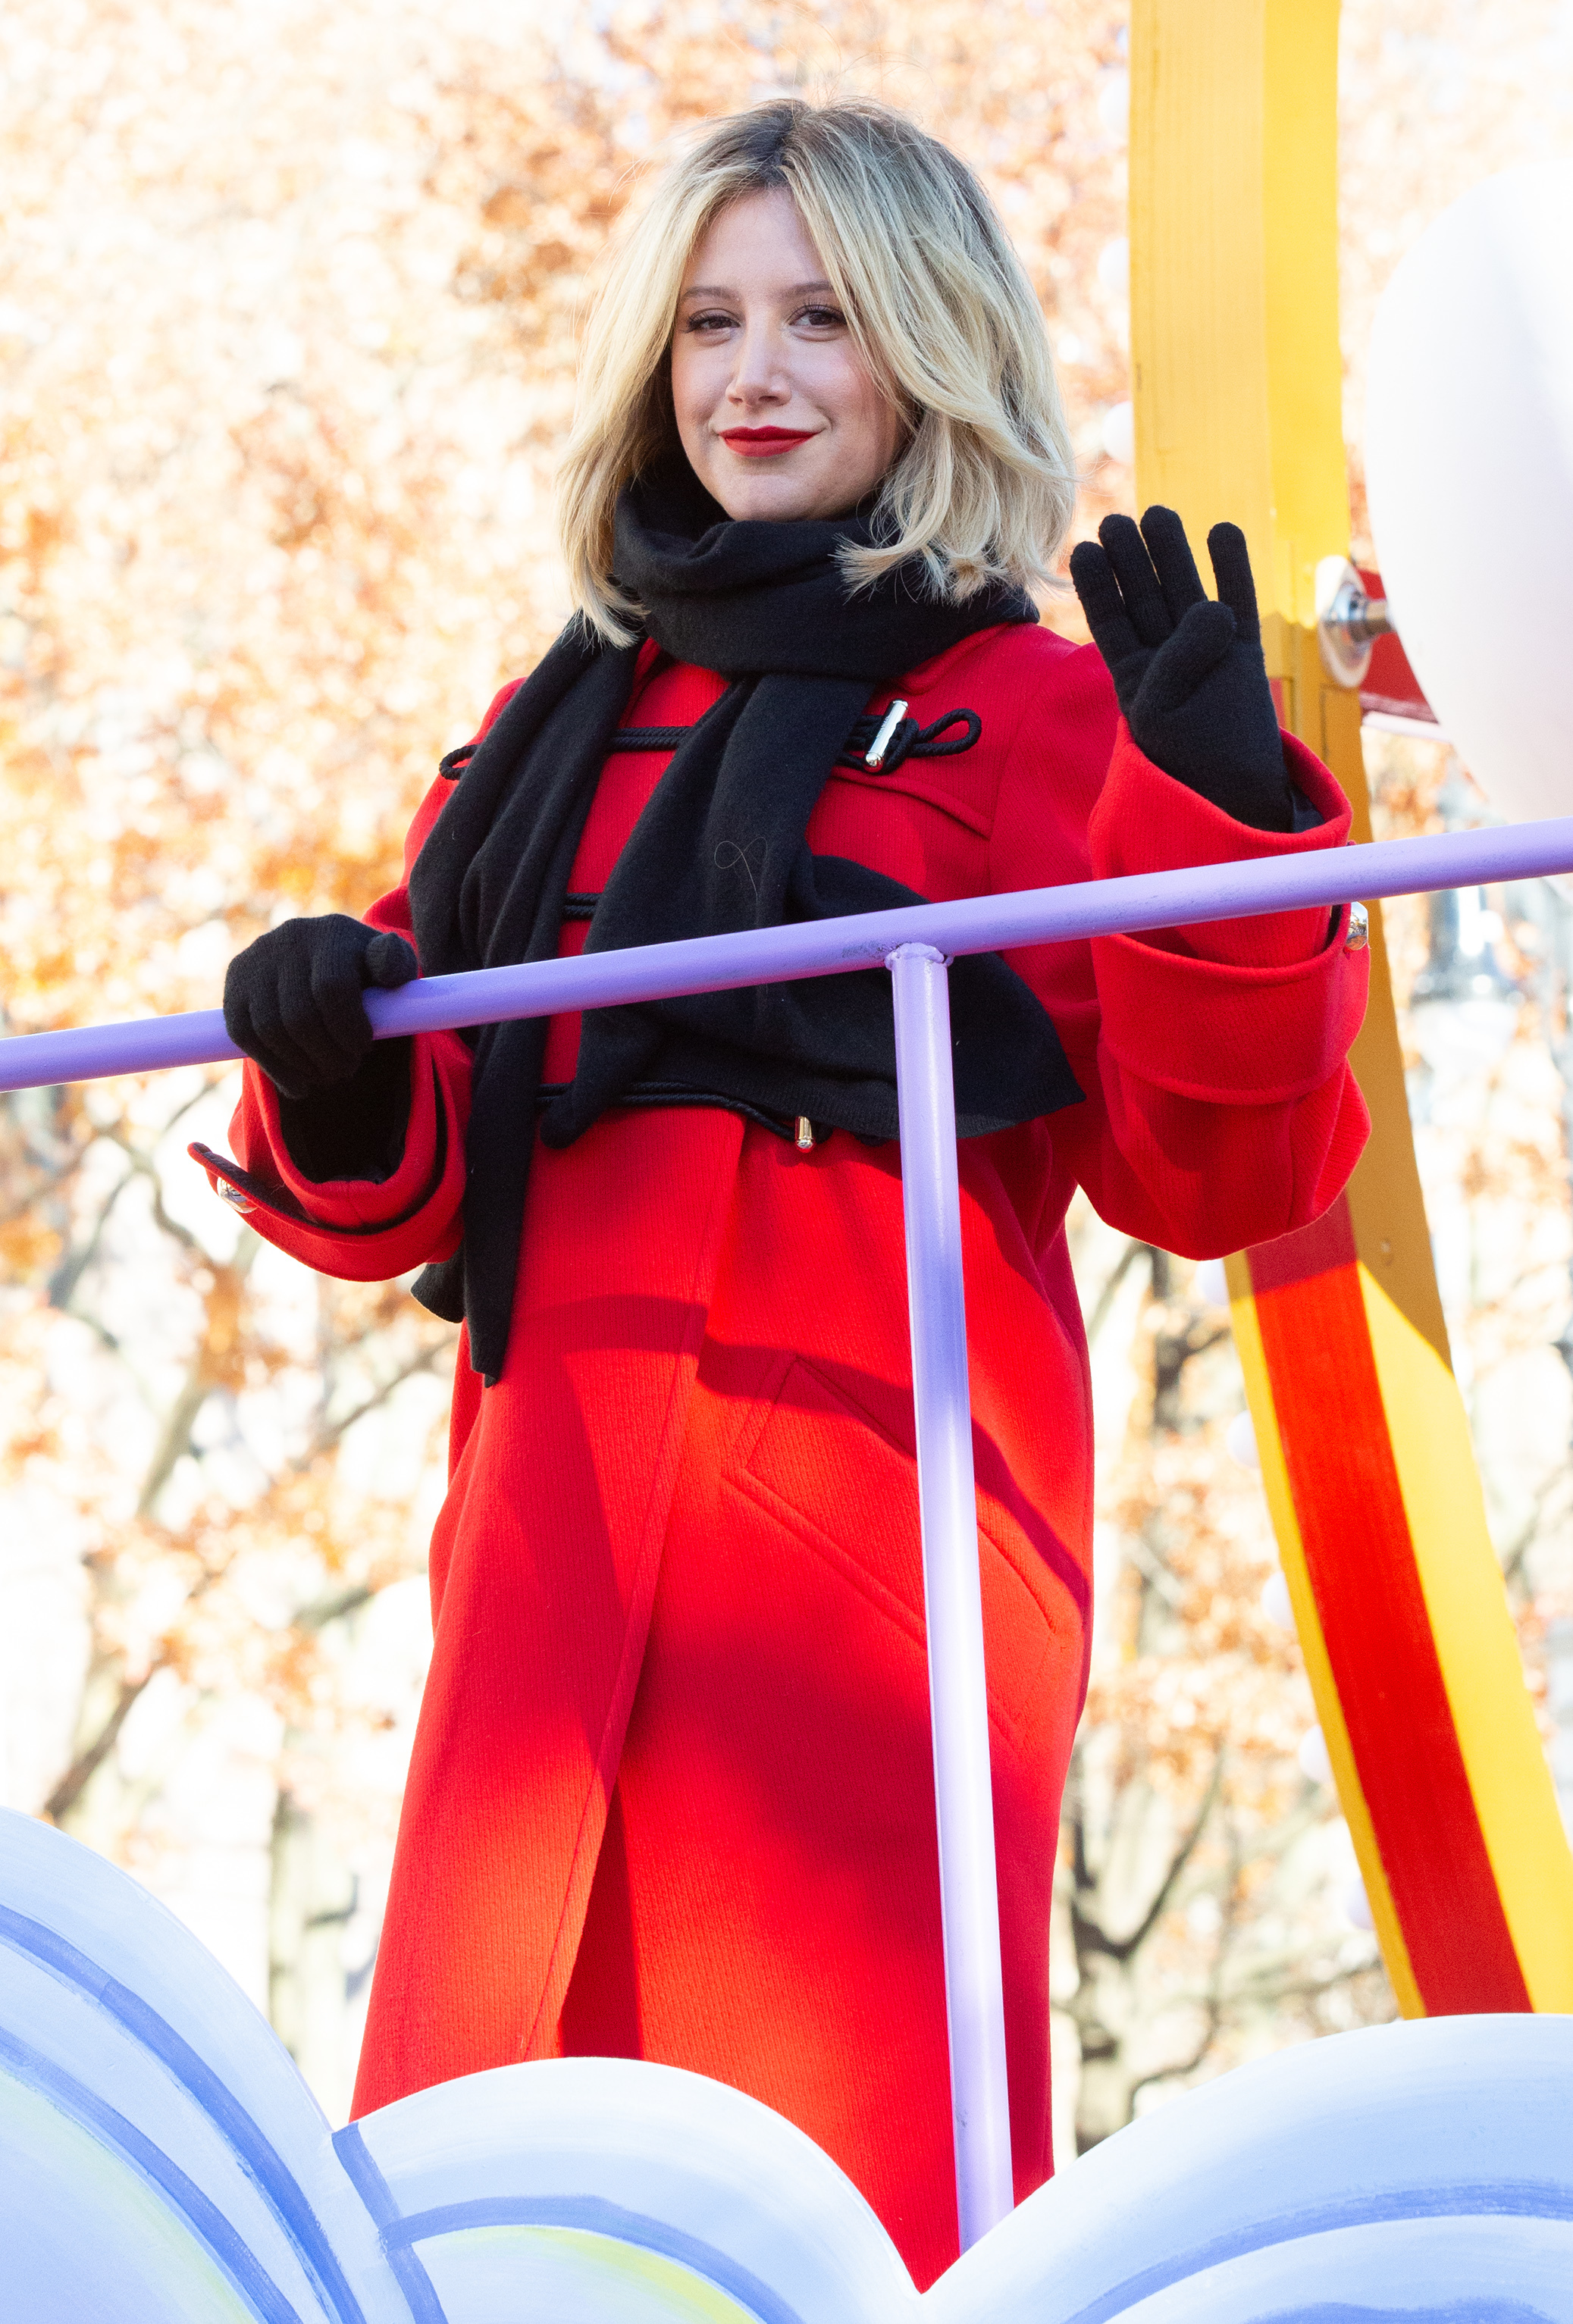 Ashley Tisdale performs in the Macy's Thanksgiving Day Parade in New York City on Nov. 22, 2018.